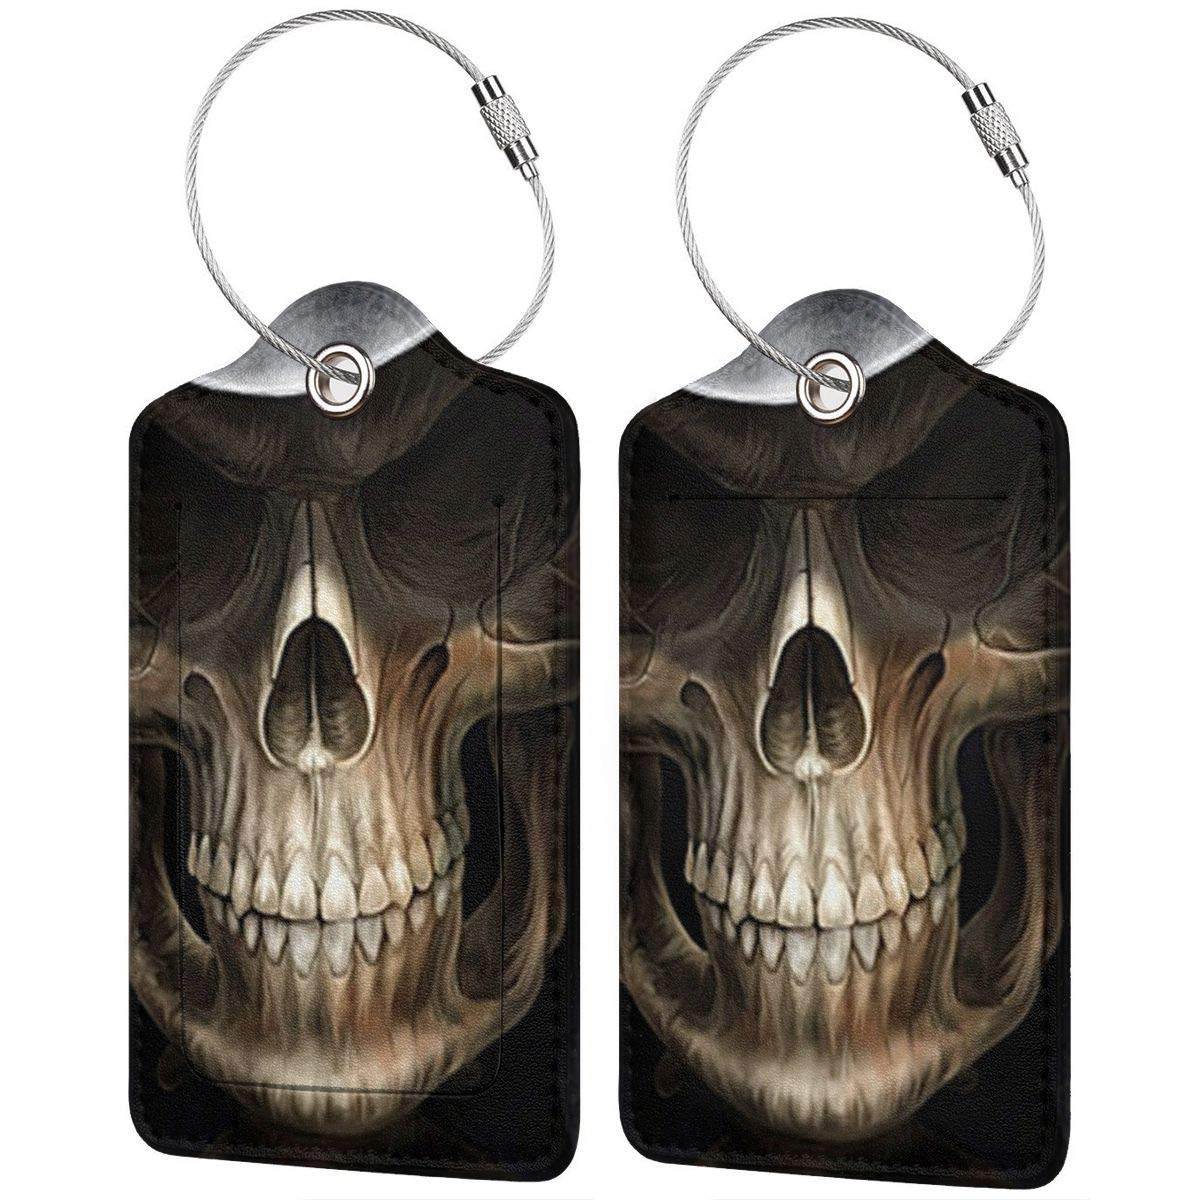 GoldK Grim Reaper Leather Luggage Tags Baggage Bag Instrument Tag Travel Labels Accessories with Privacy Cover